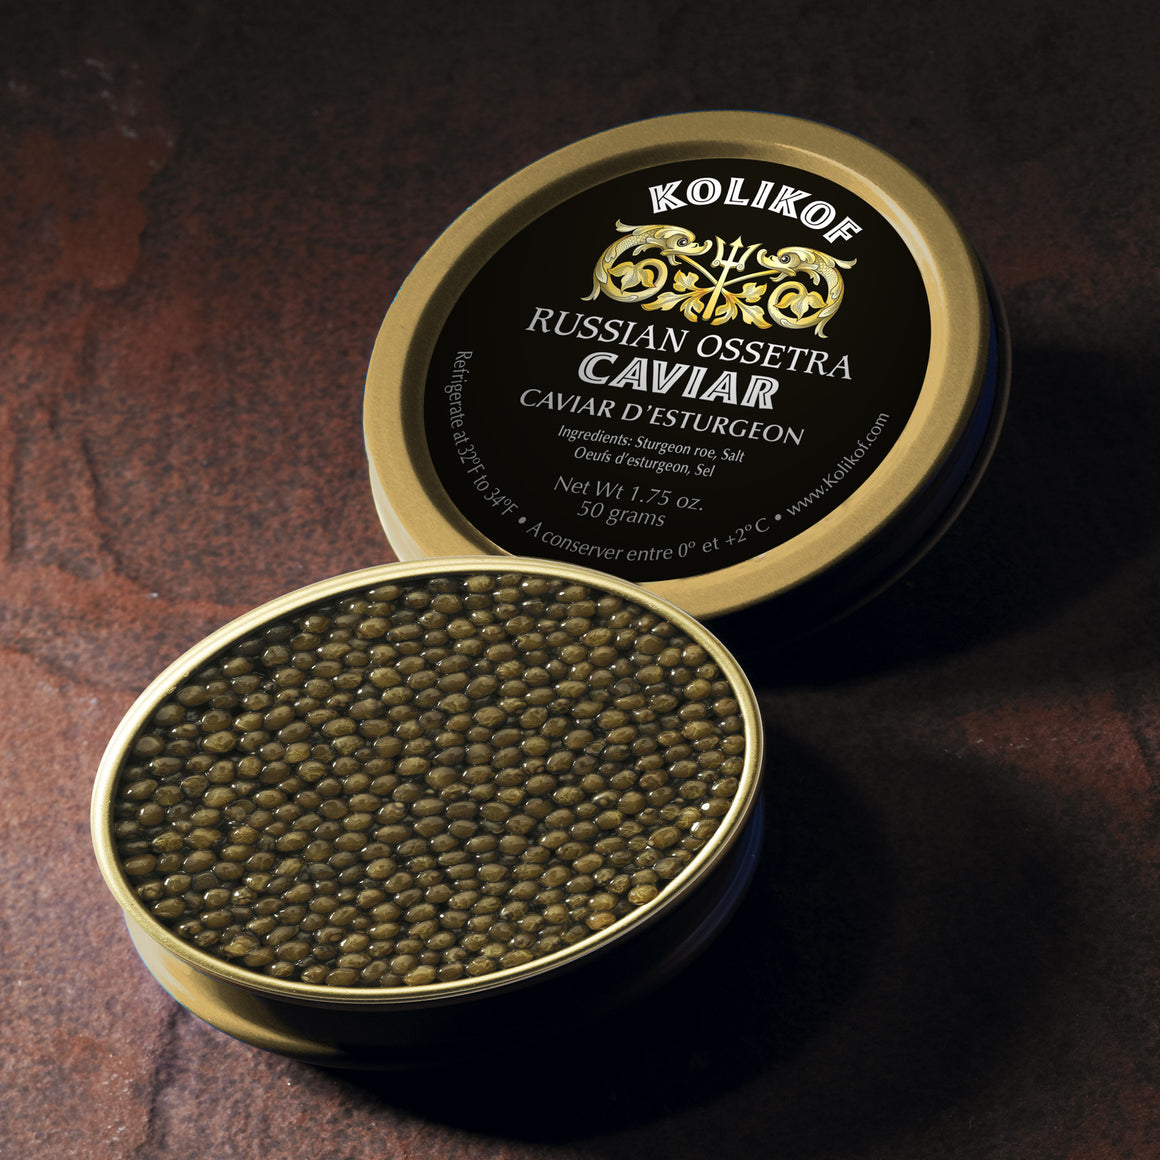 Buy Russian Ossetra sturgeon caviar online. Kolikof is the finest Osetra in the world.